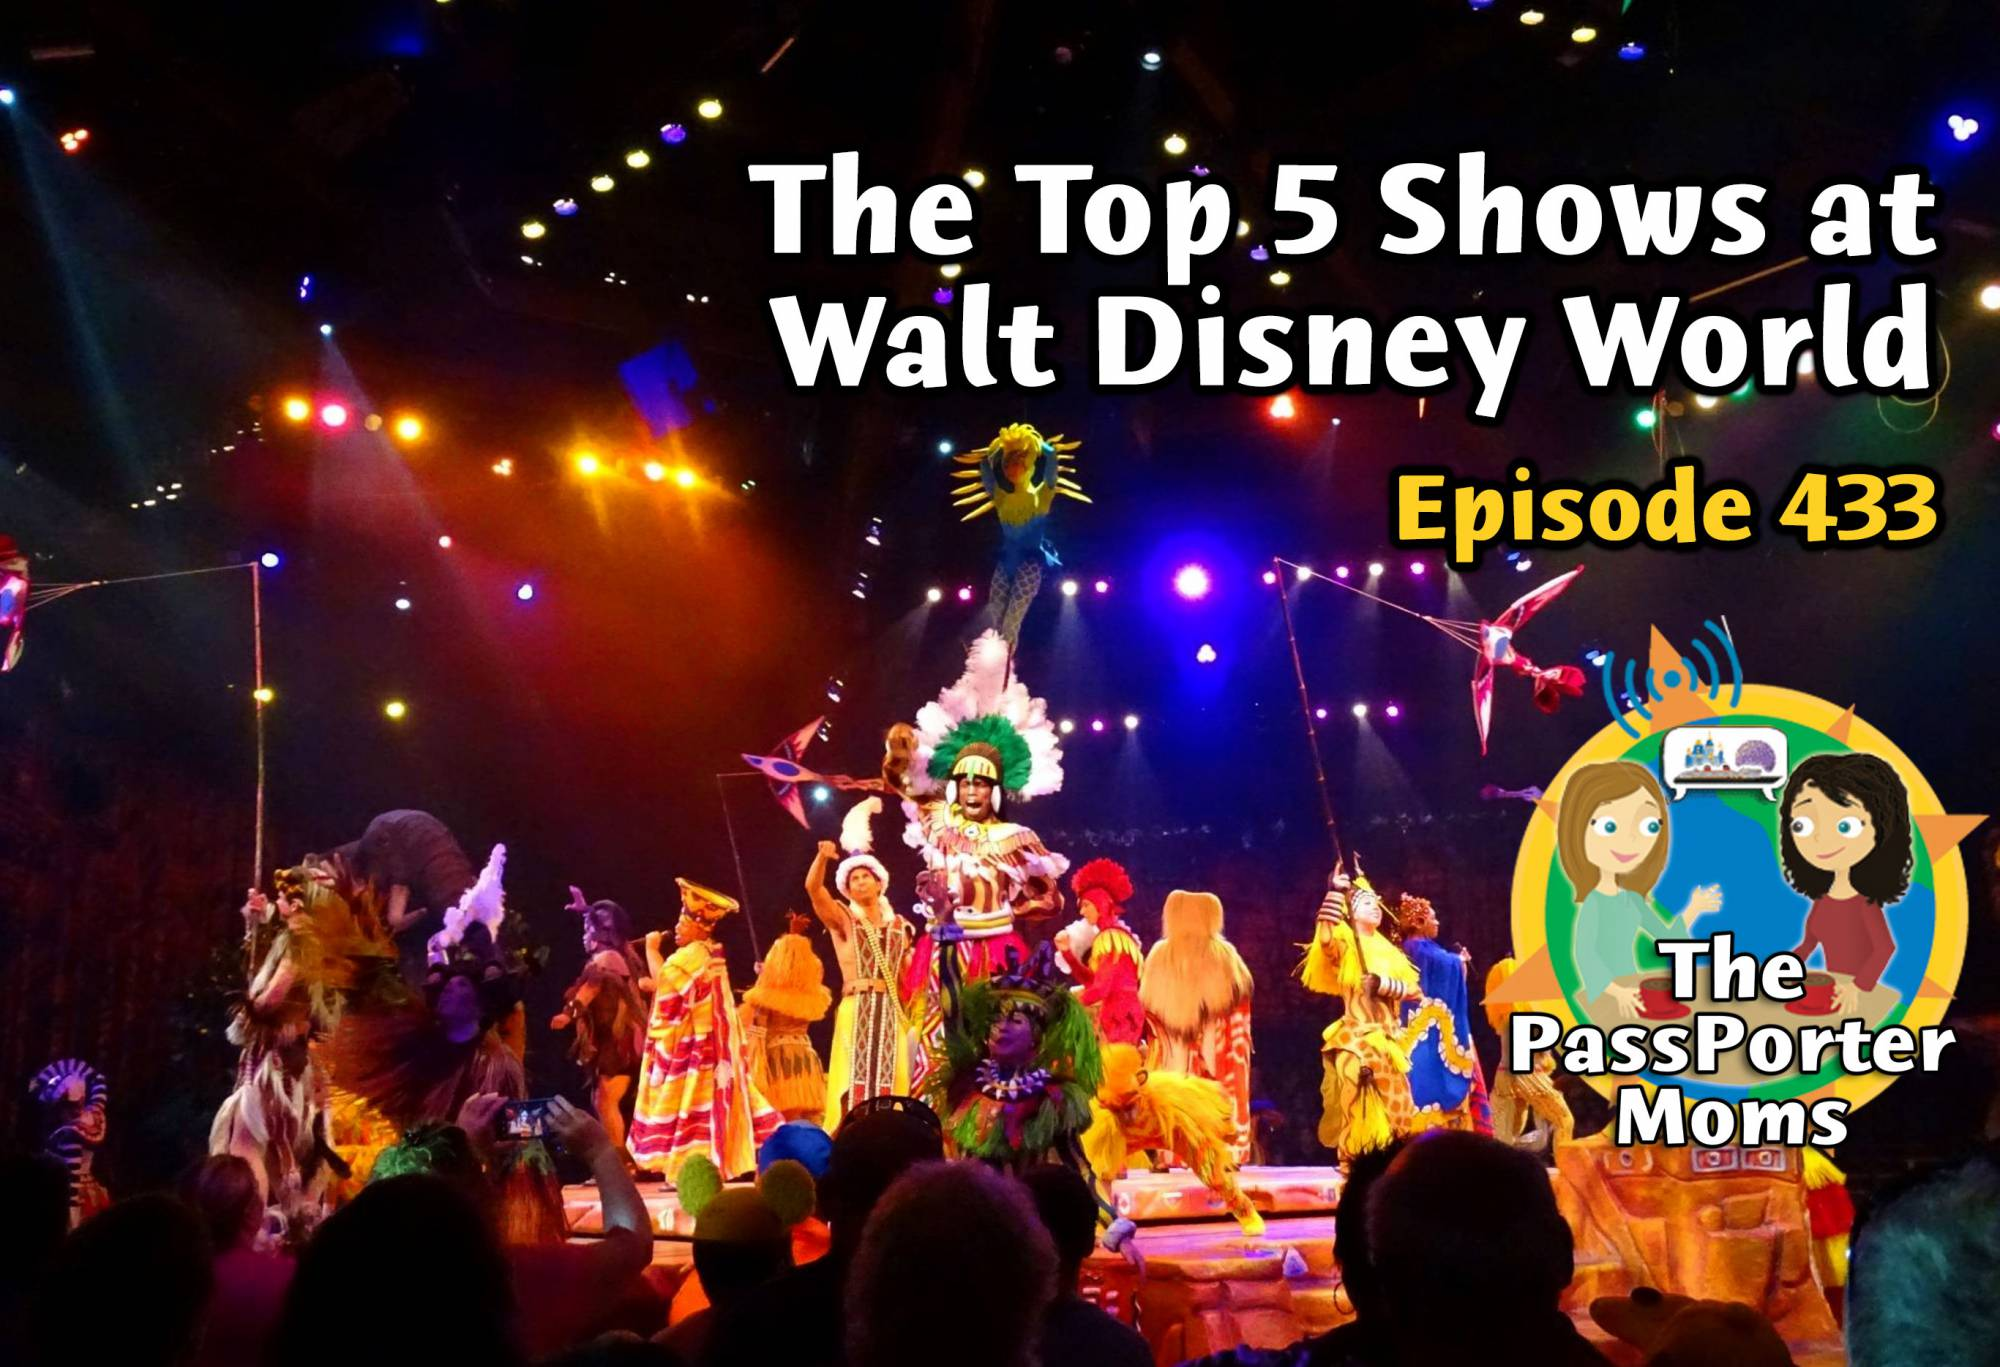 Top 5 Shows at Walt Disney World